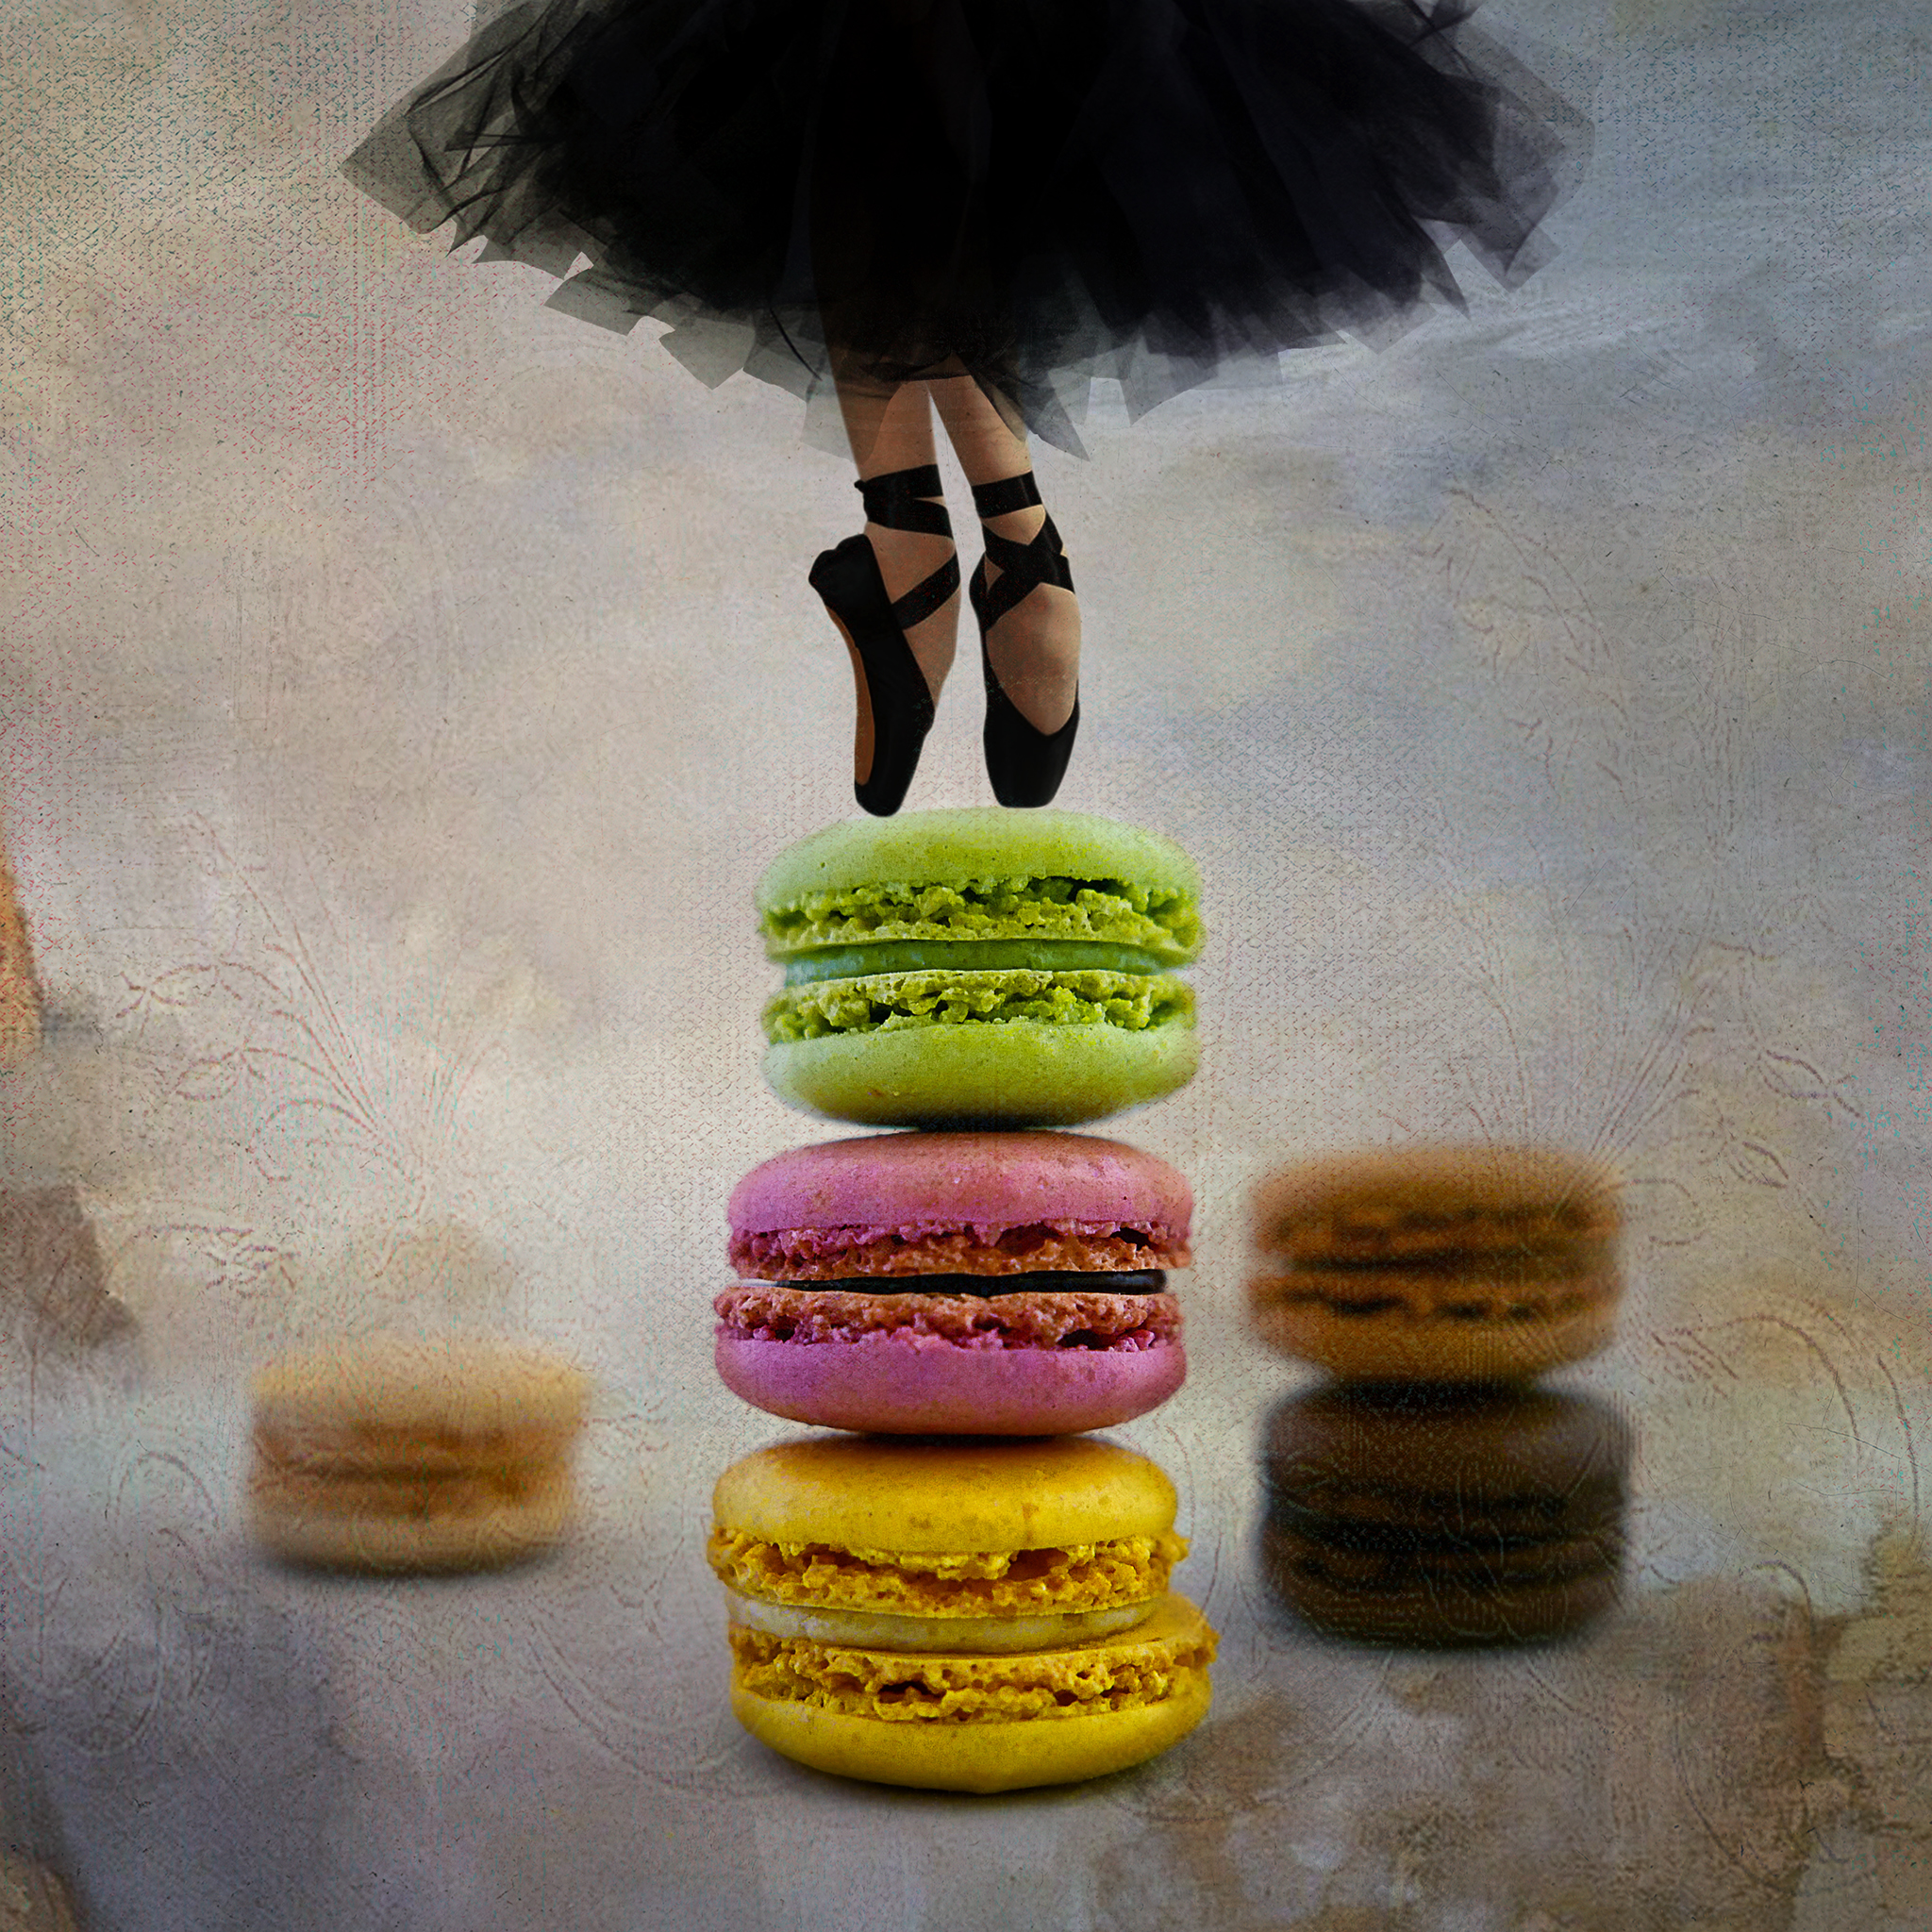 Melinda Isachsen JANIS Photography & Fine Art Ballerina Dancing on Macarons